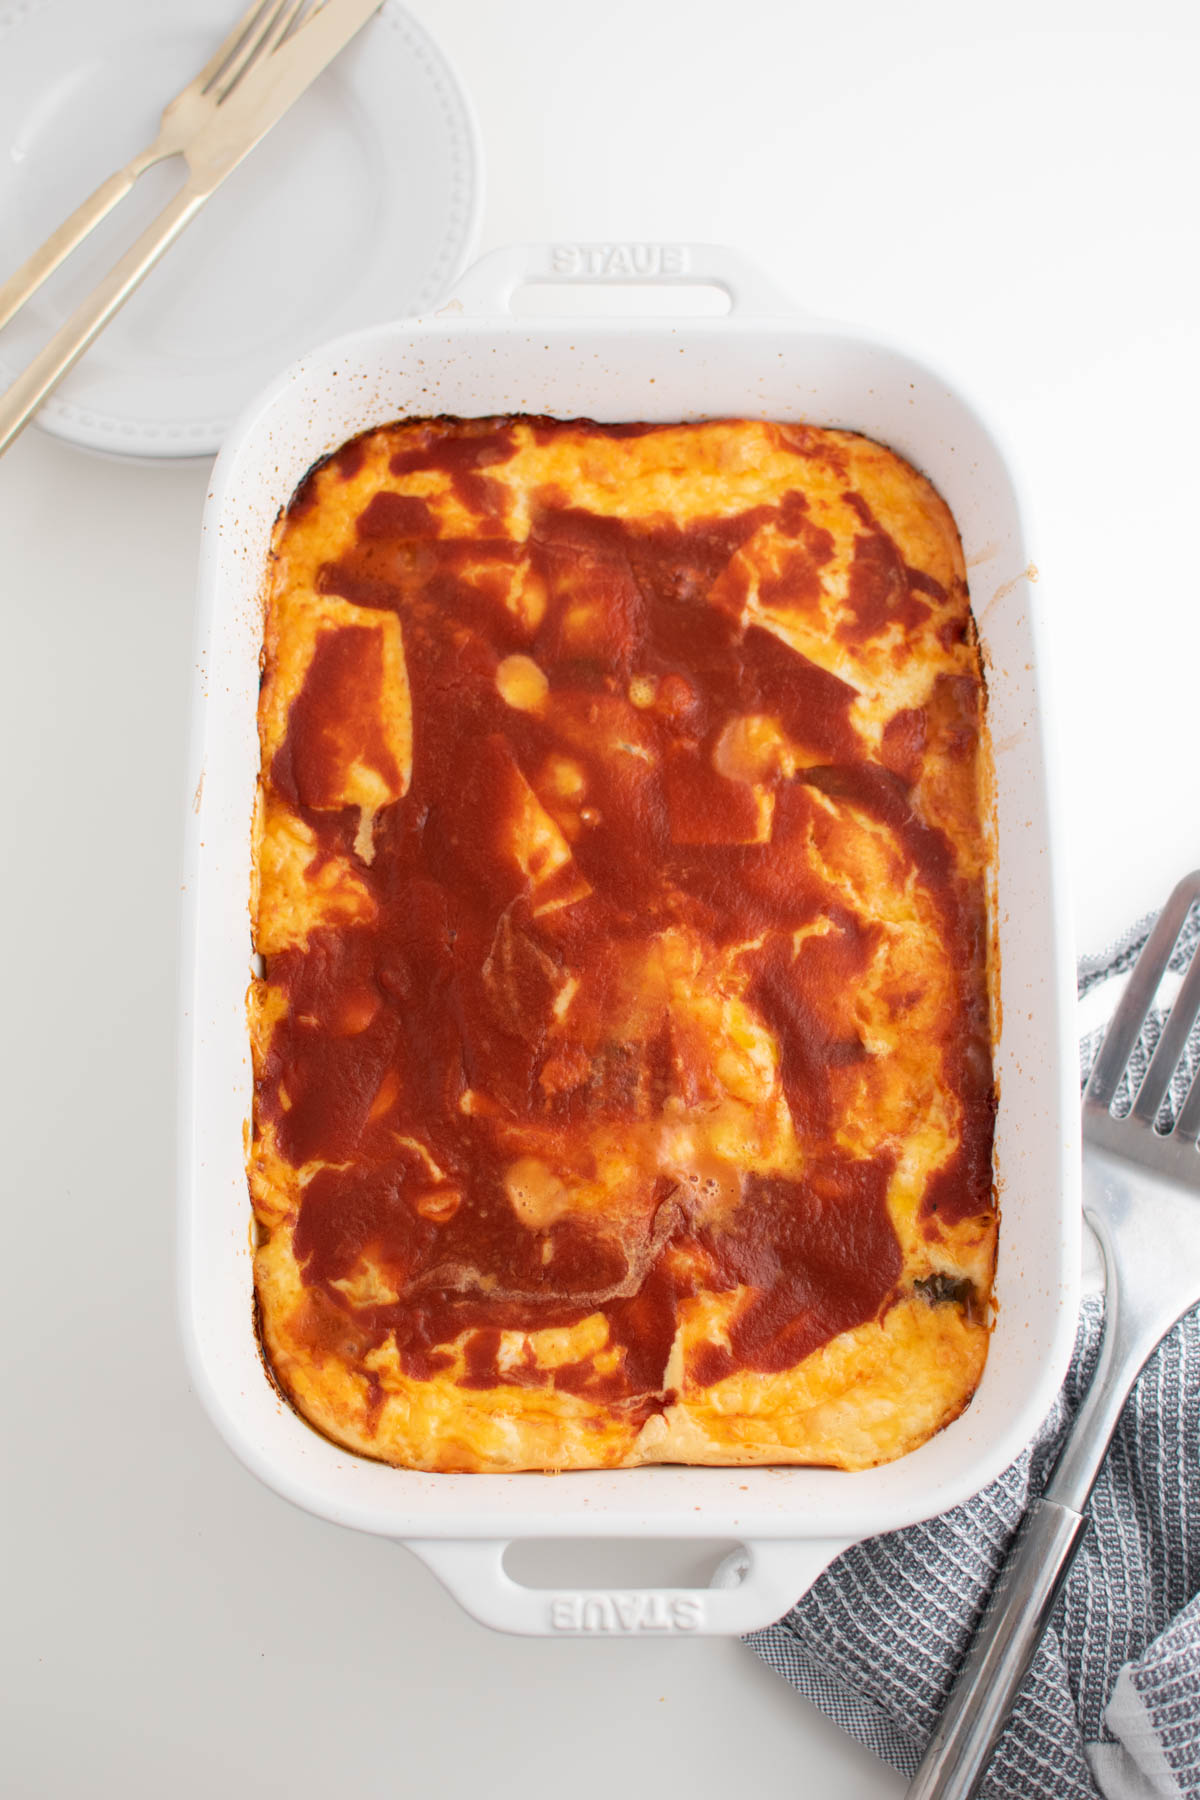 Baking dish of chile relleno casserole on white table surrounded by plates and spatula.